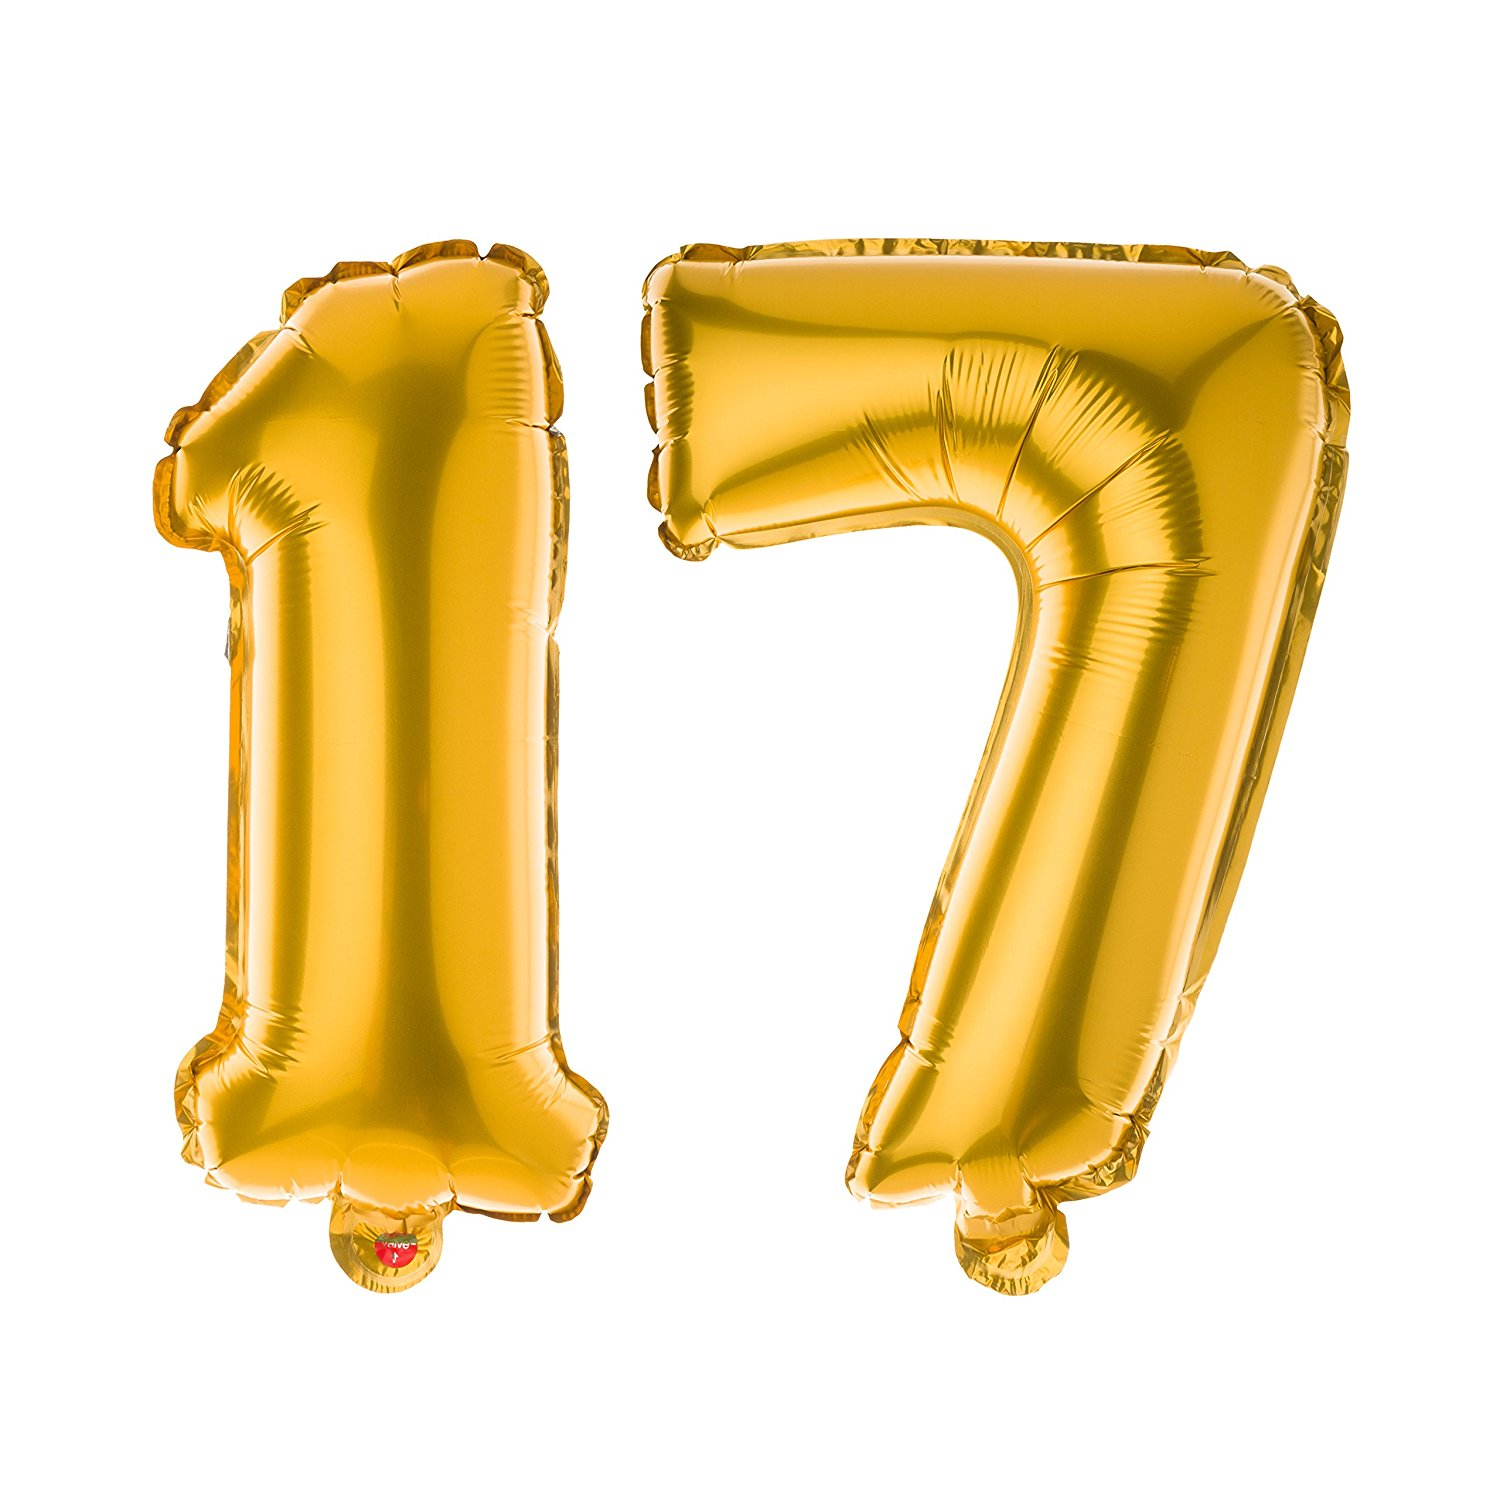 Ella Celebration 17 Number Balloons for 17th Birthday Party, 40 Inch Large Mylar Helium Foil Balloon Numbers (Gold)